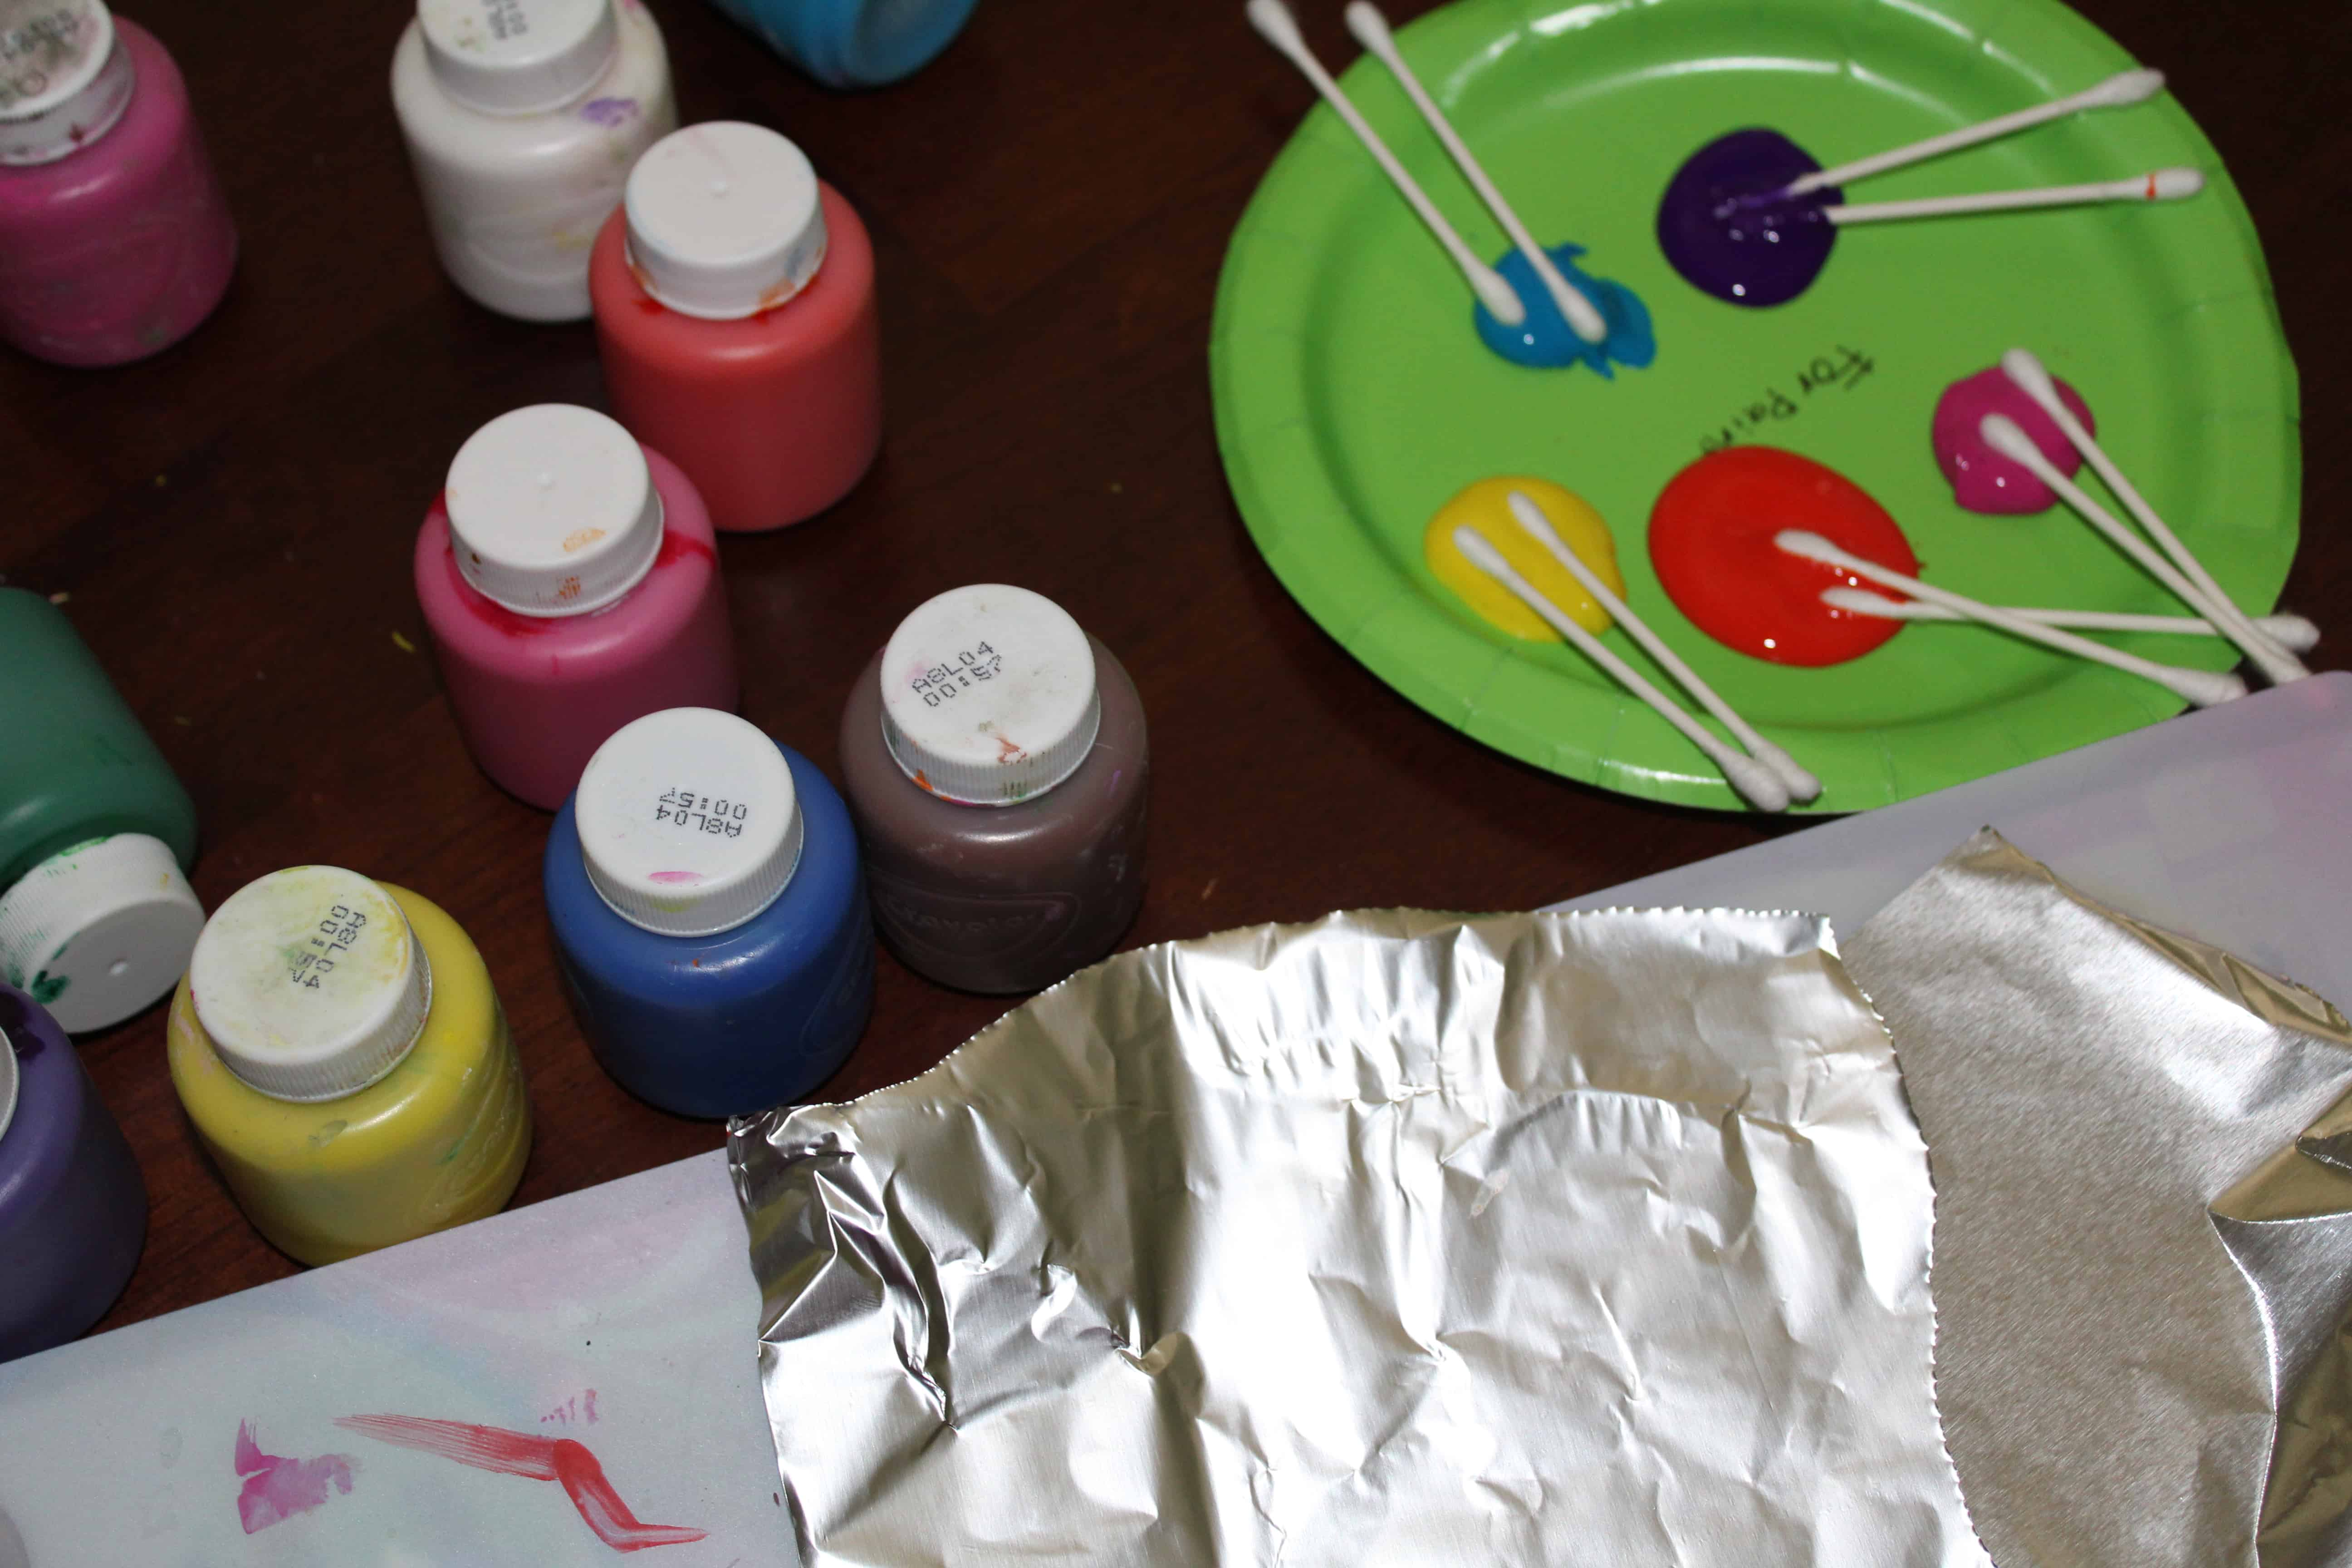 A paper plate with Acrylic paints on it. Containers of paint and a sheet of foil.